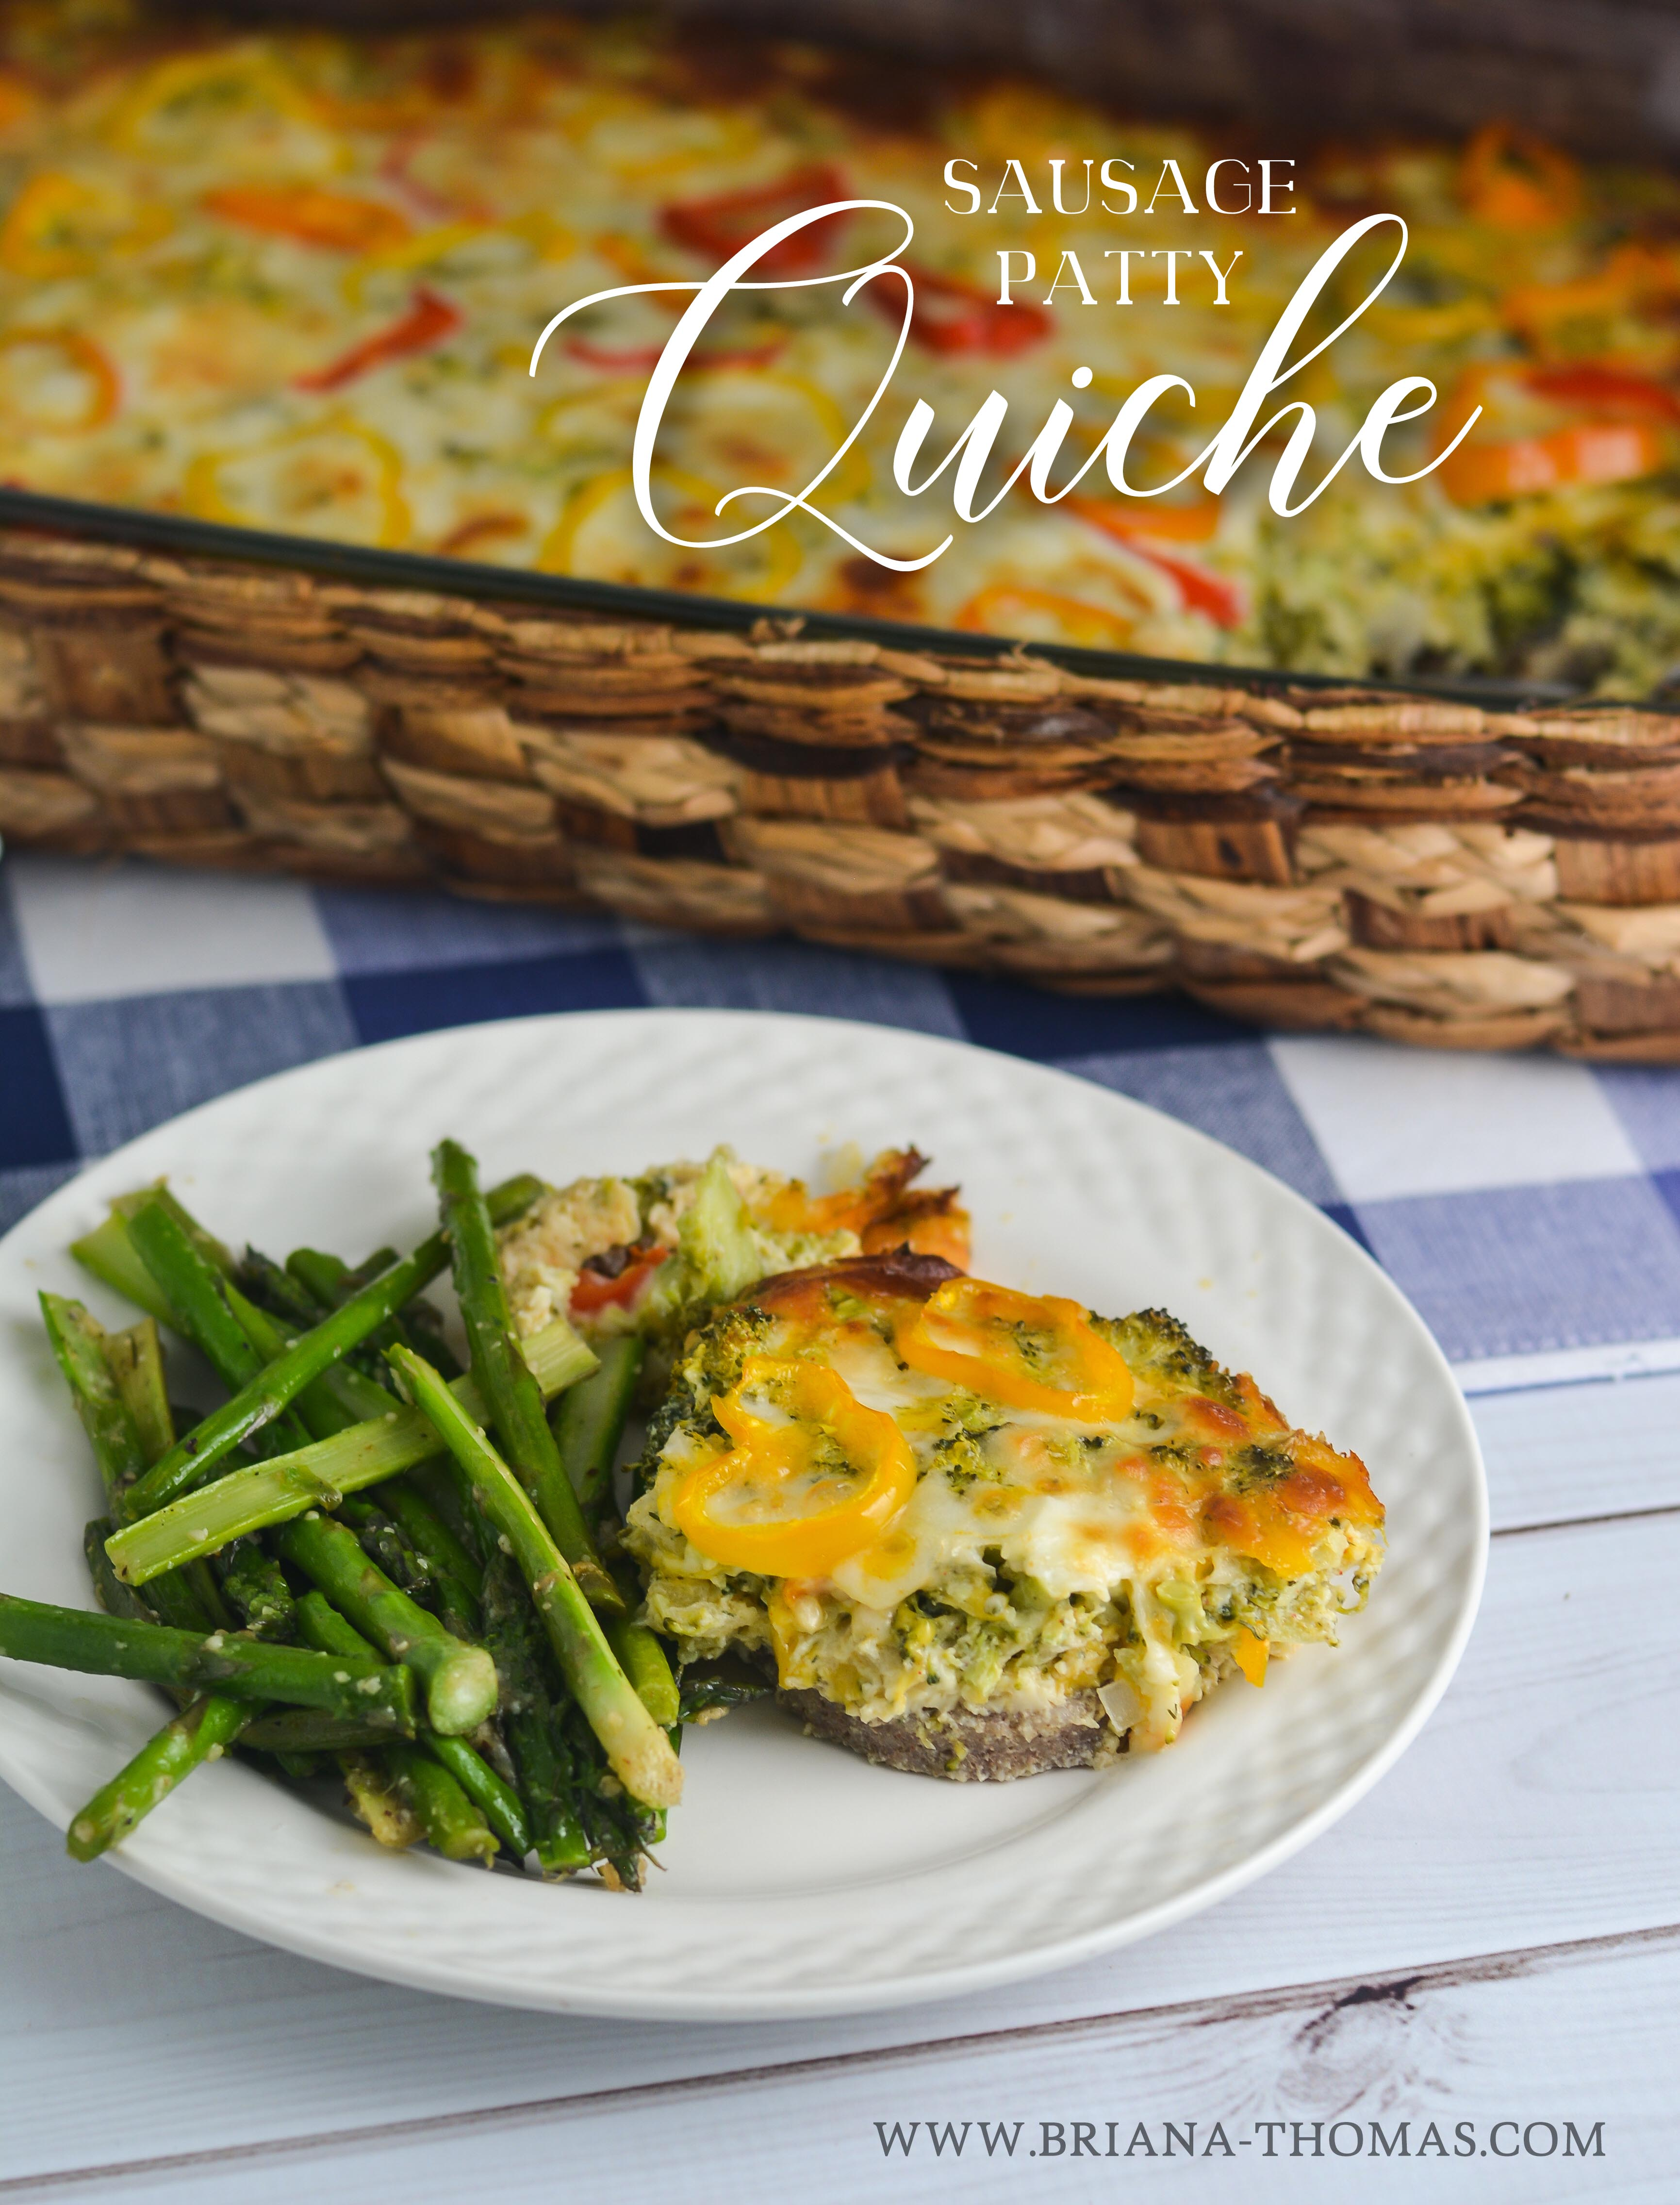 This Sausage Patty Quiche uses simple, cheap ingredients and comes together in a snap! THM:S, low carb, gluten free, nut free